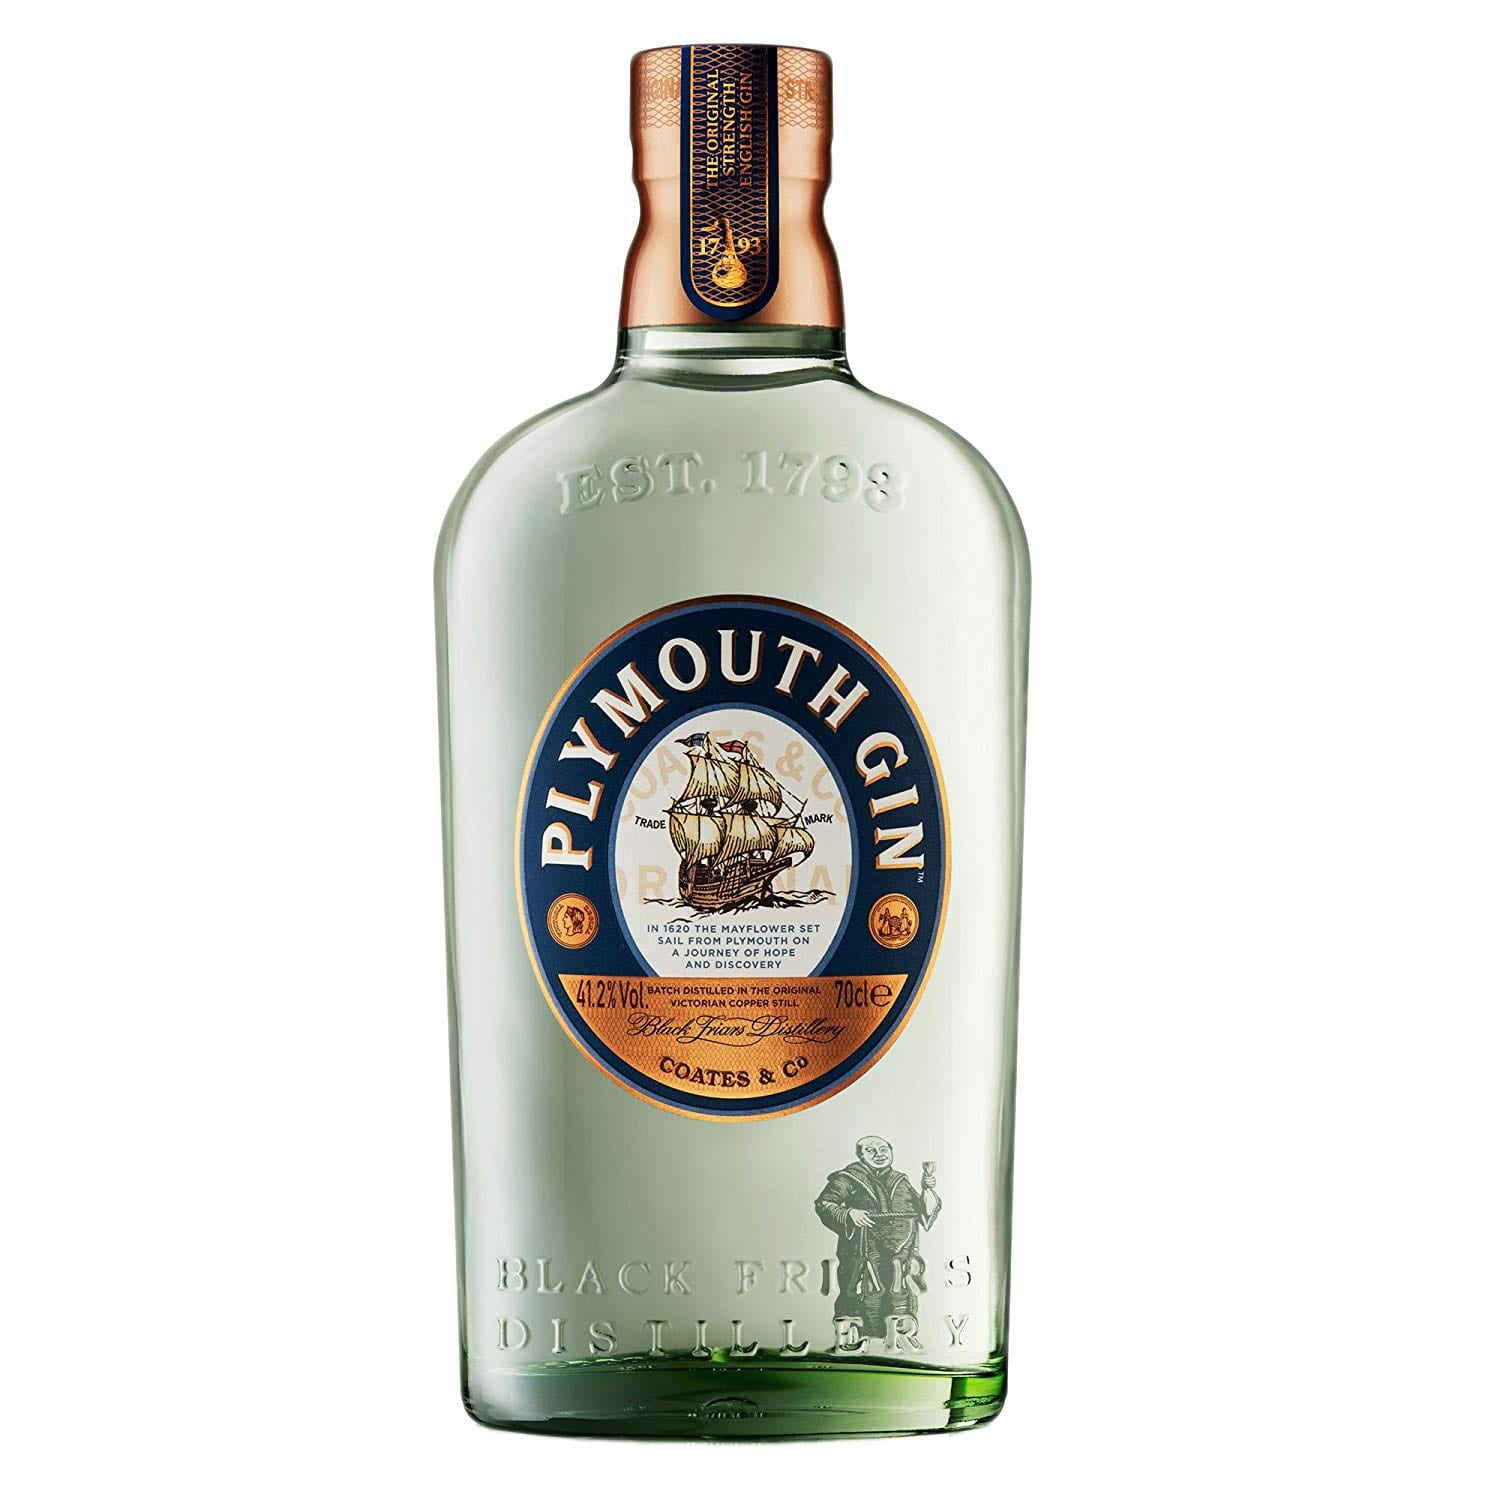 Plymouth London Dry Gin